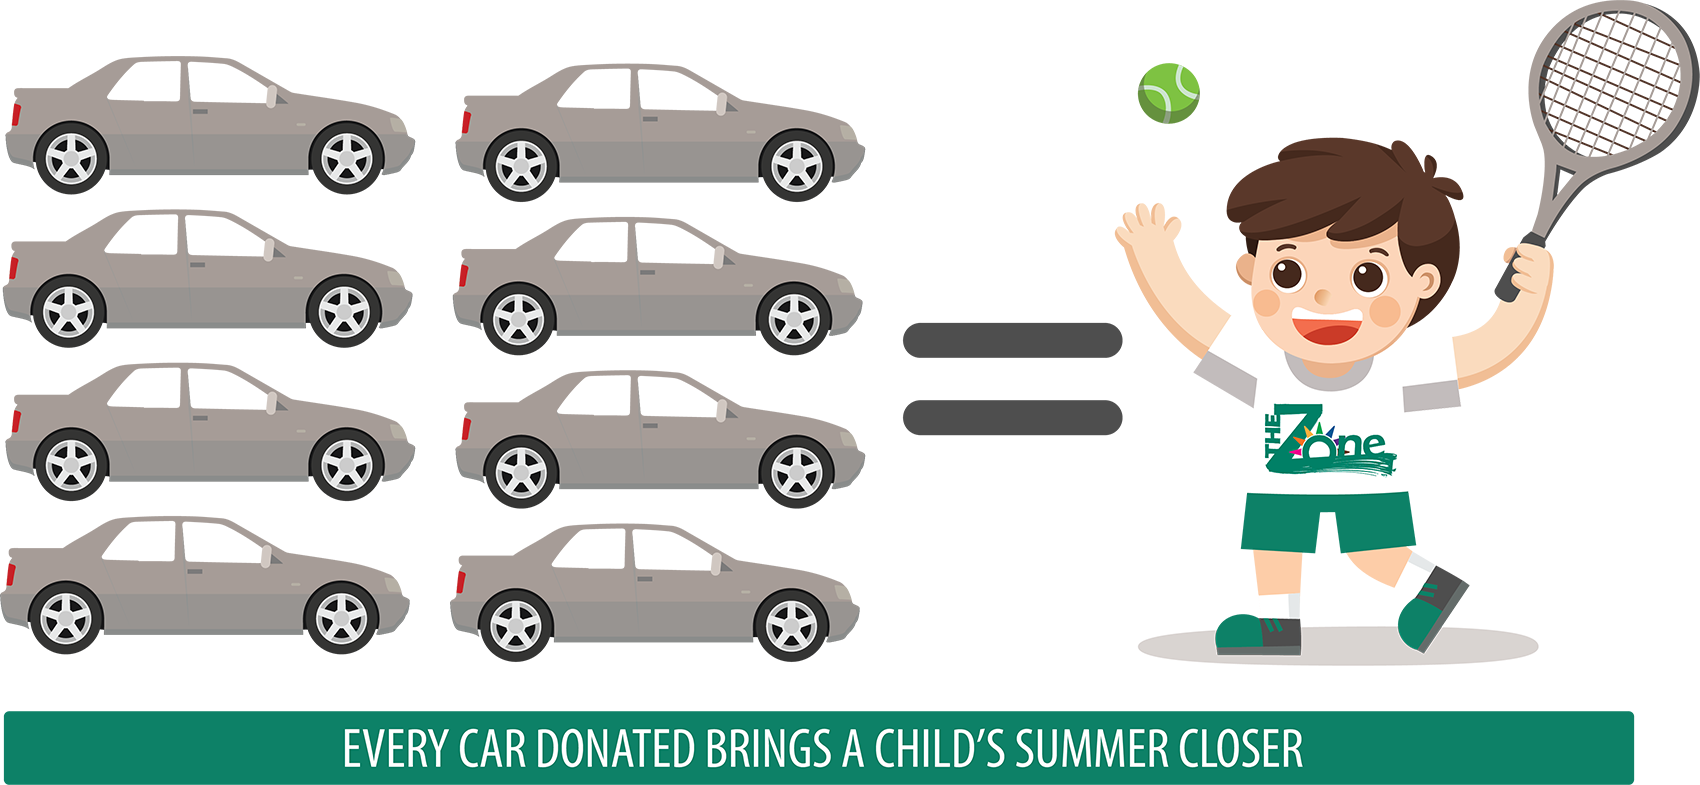 Every car donated brings a child's summer closer.